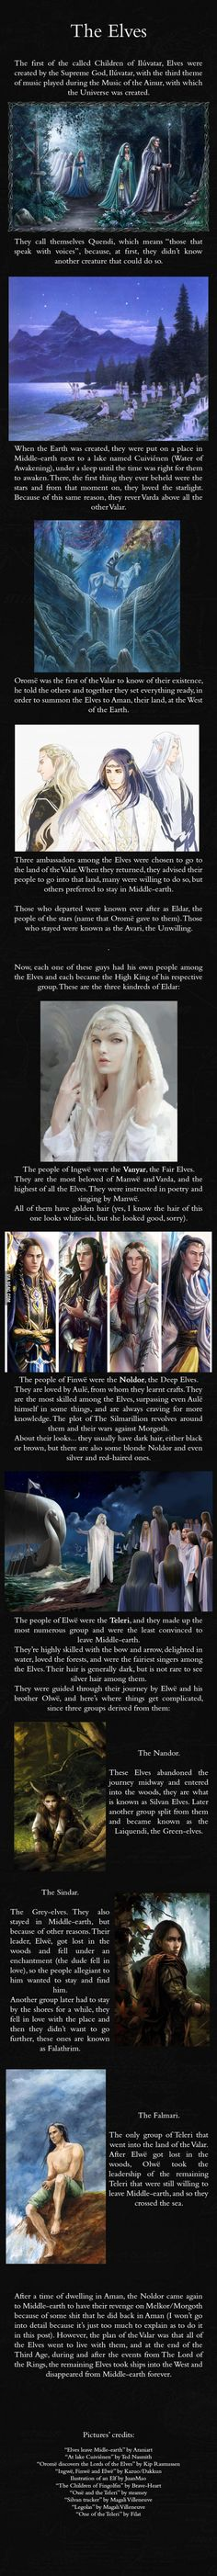 History of the elves